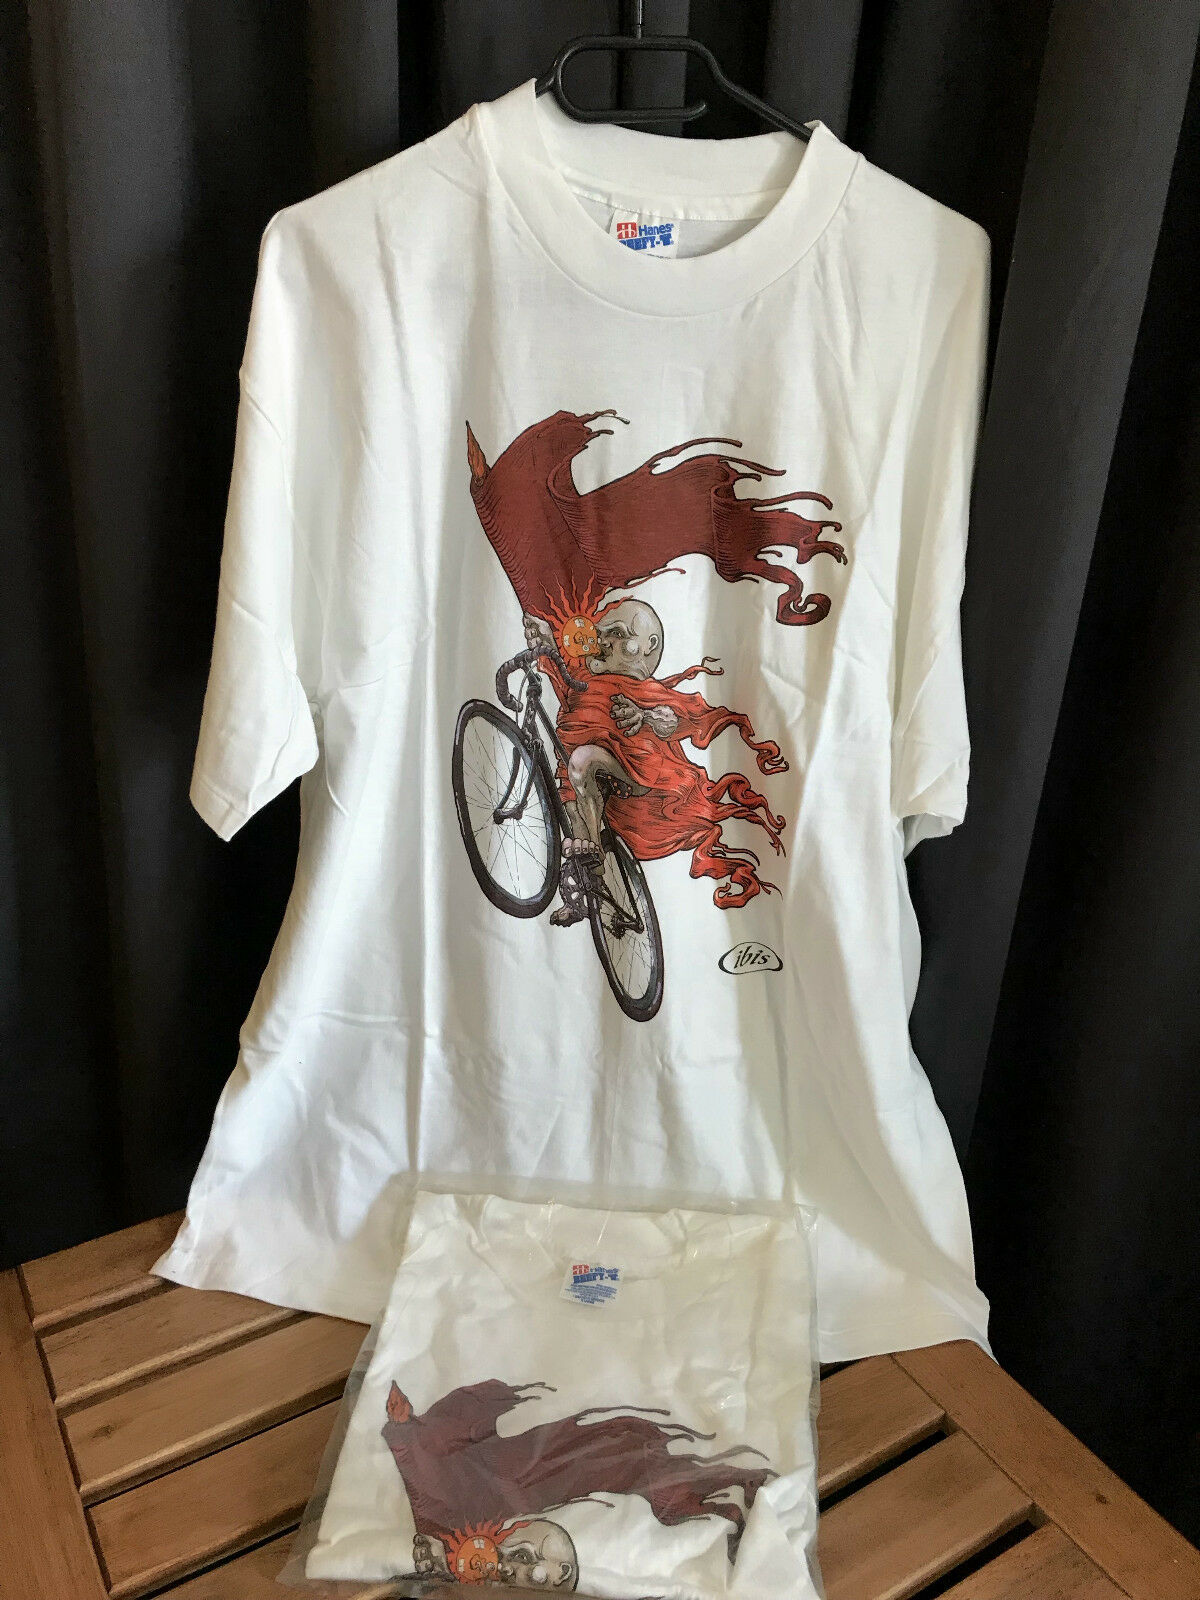 Cult rare 100% NOS Vintage oldschool IBIS IBIS IBIS cycles T-SHIRT  in XL fdf6e2